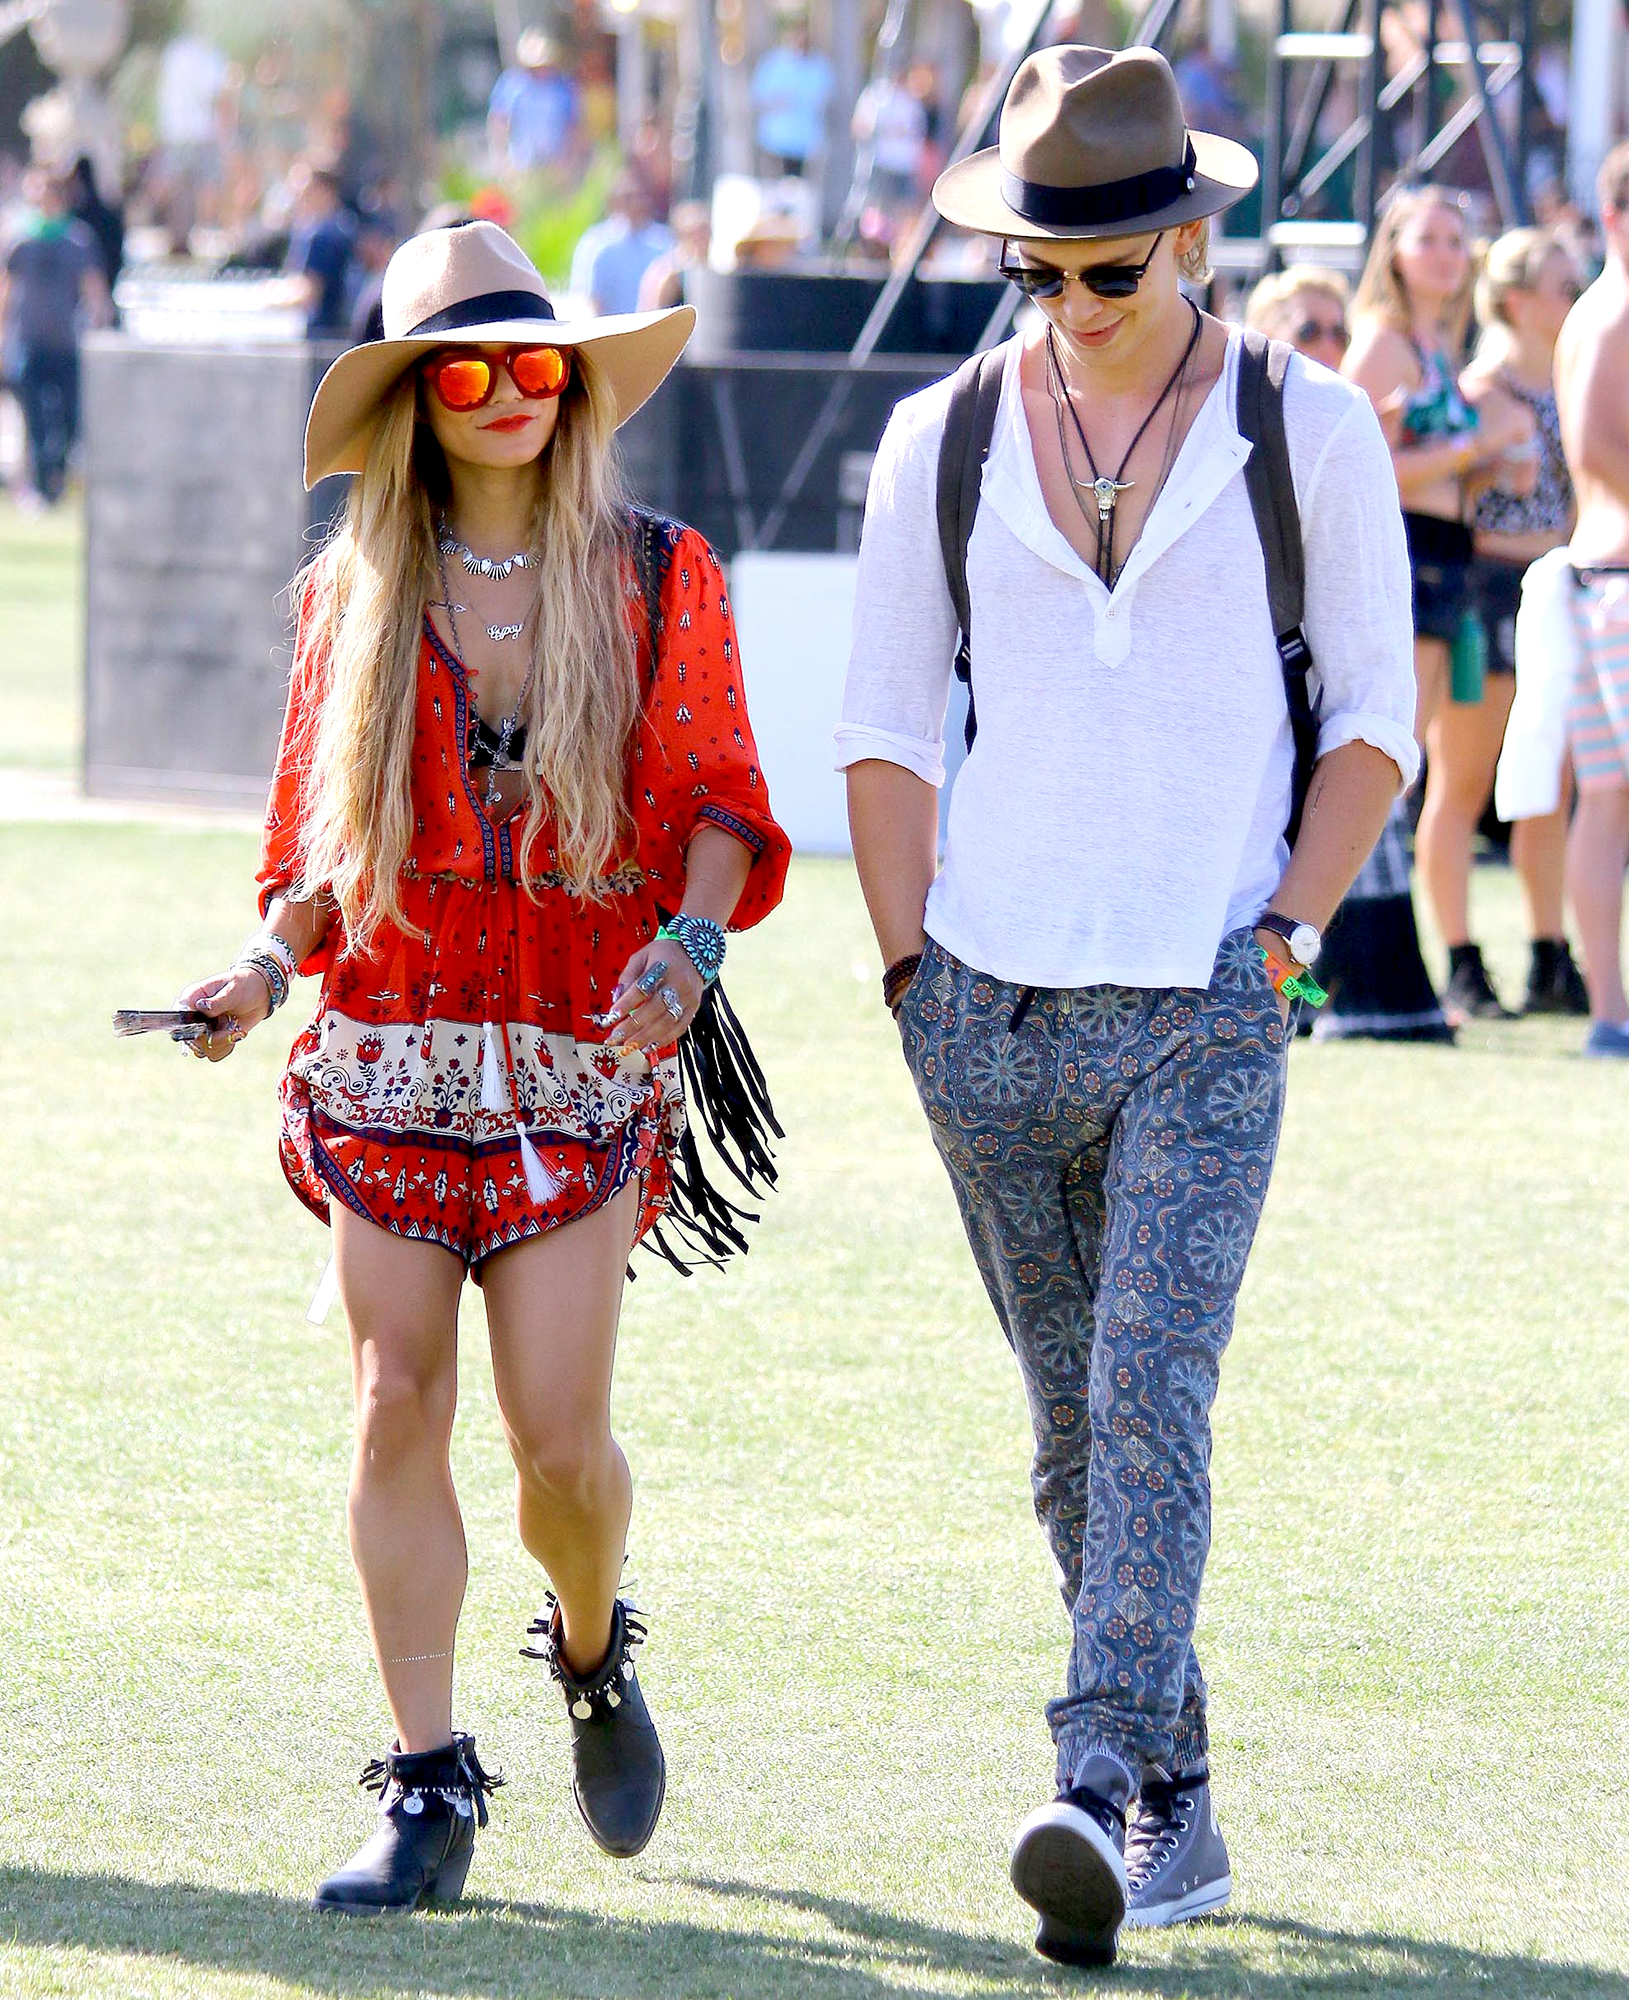 VANESSA-HUDGENS-AUSTIN-BUTLER-coachella - The actress and the Switched at Birth alum embodied Coachella's spring vibe in flowy outfits in 2014.